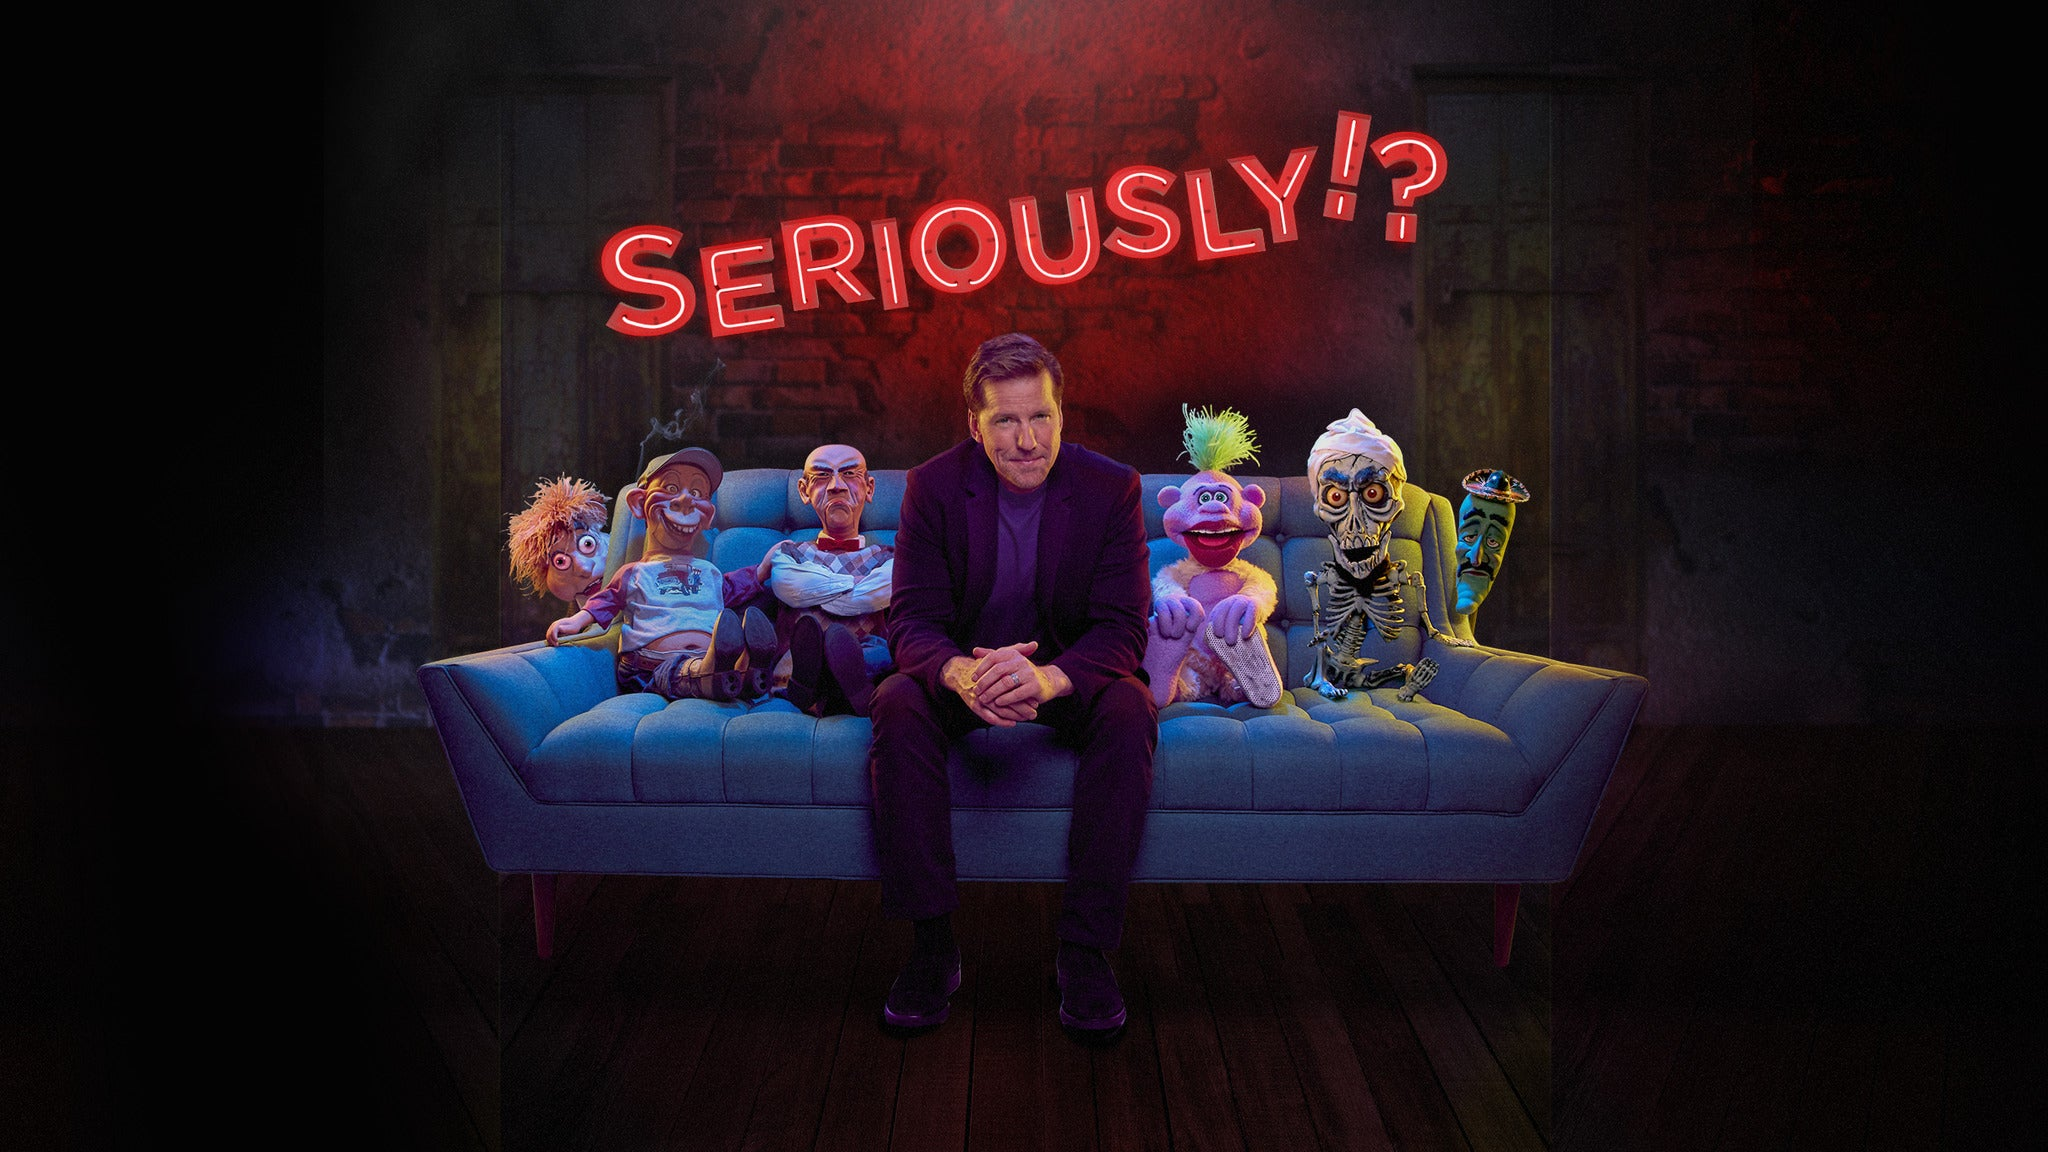 Jeff Dunham: Seriously!? at Mystic Lake Casino Hotel